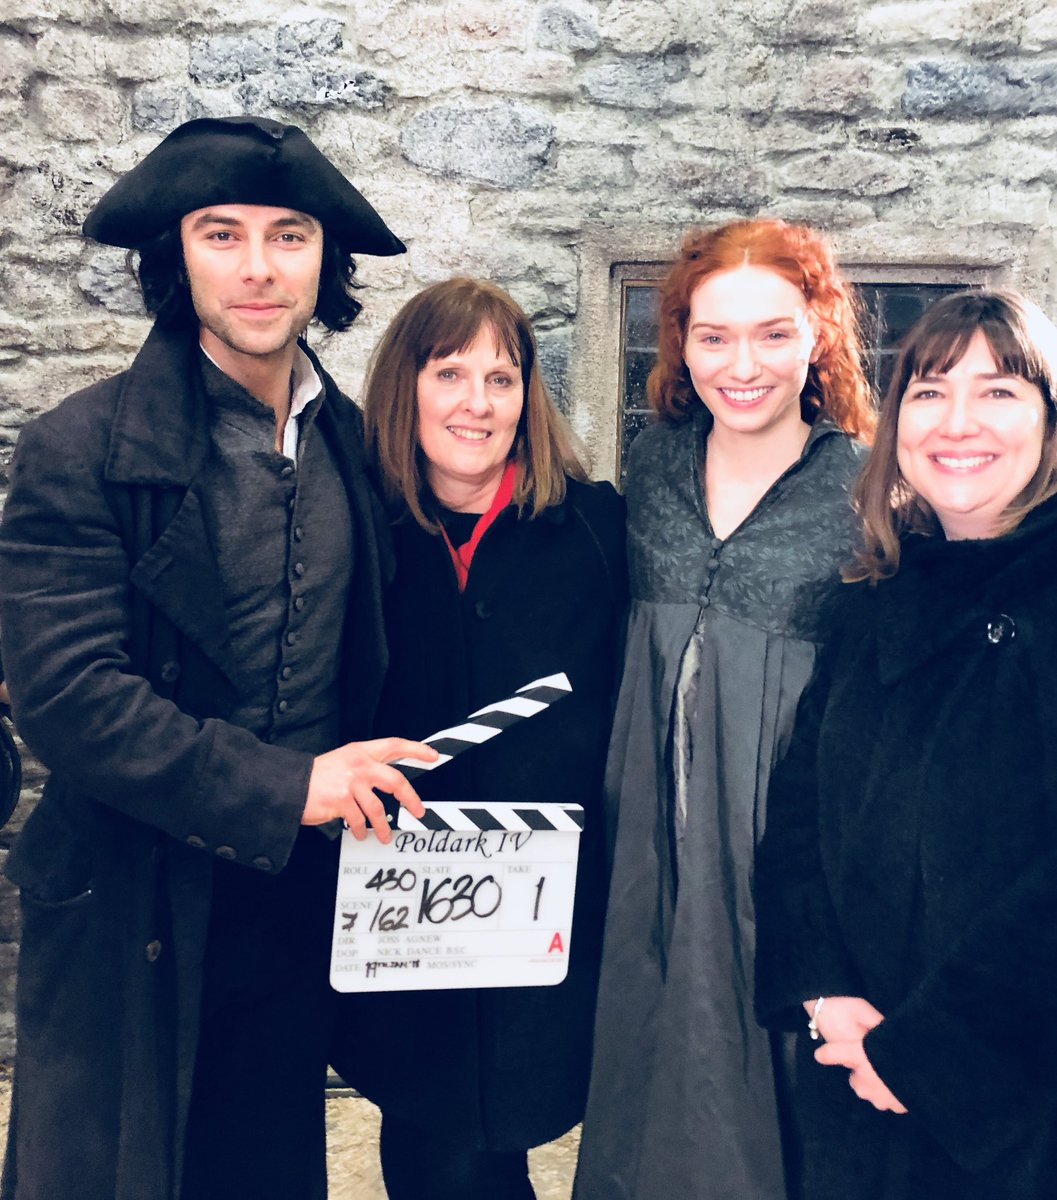 The 'Poldark' Cast Have Finished Filming Season 4